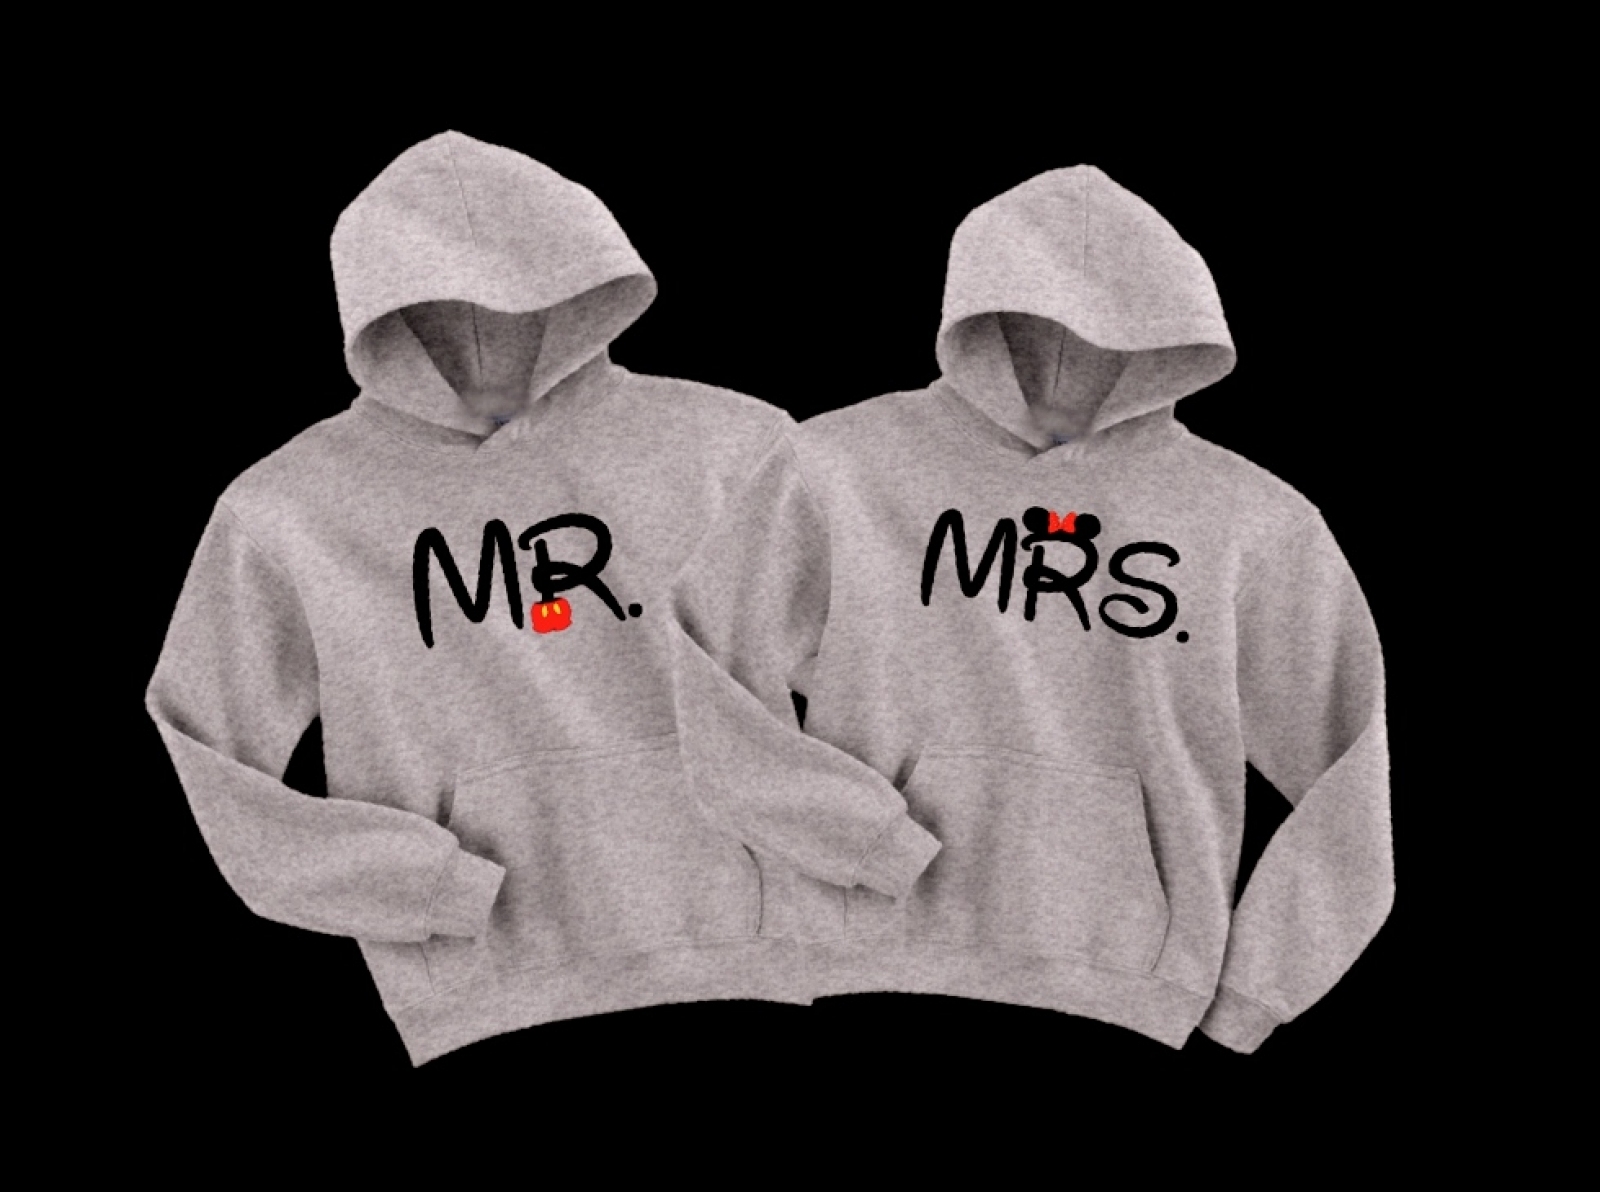 Mr And Mrs Sweatshirt The Official Site Of Logantolayla Check out our nightmare before christmas hoodie selection for the very best in unique or custom, handmade pieces from our clothing shops. disney mr and mrs hoodie sweatshirt set of 2